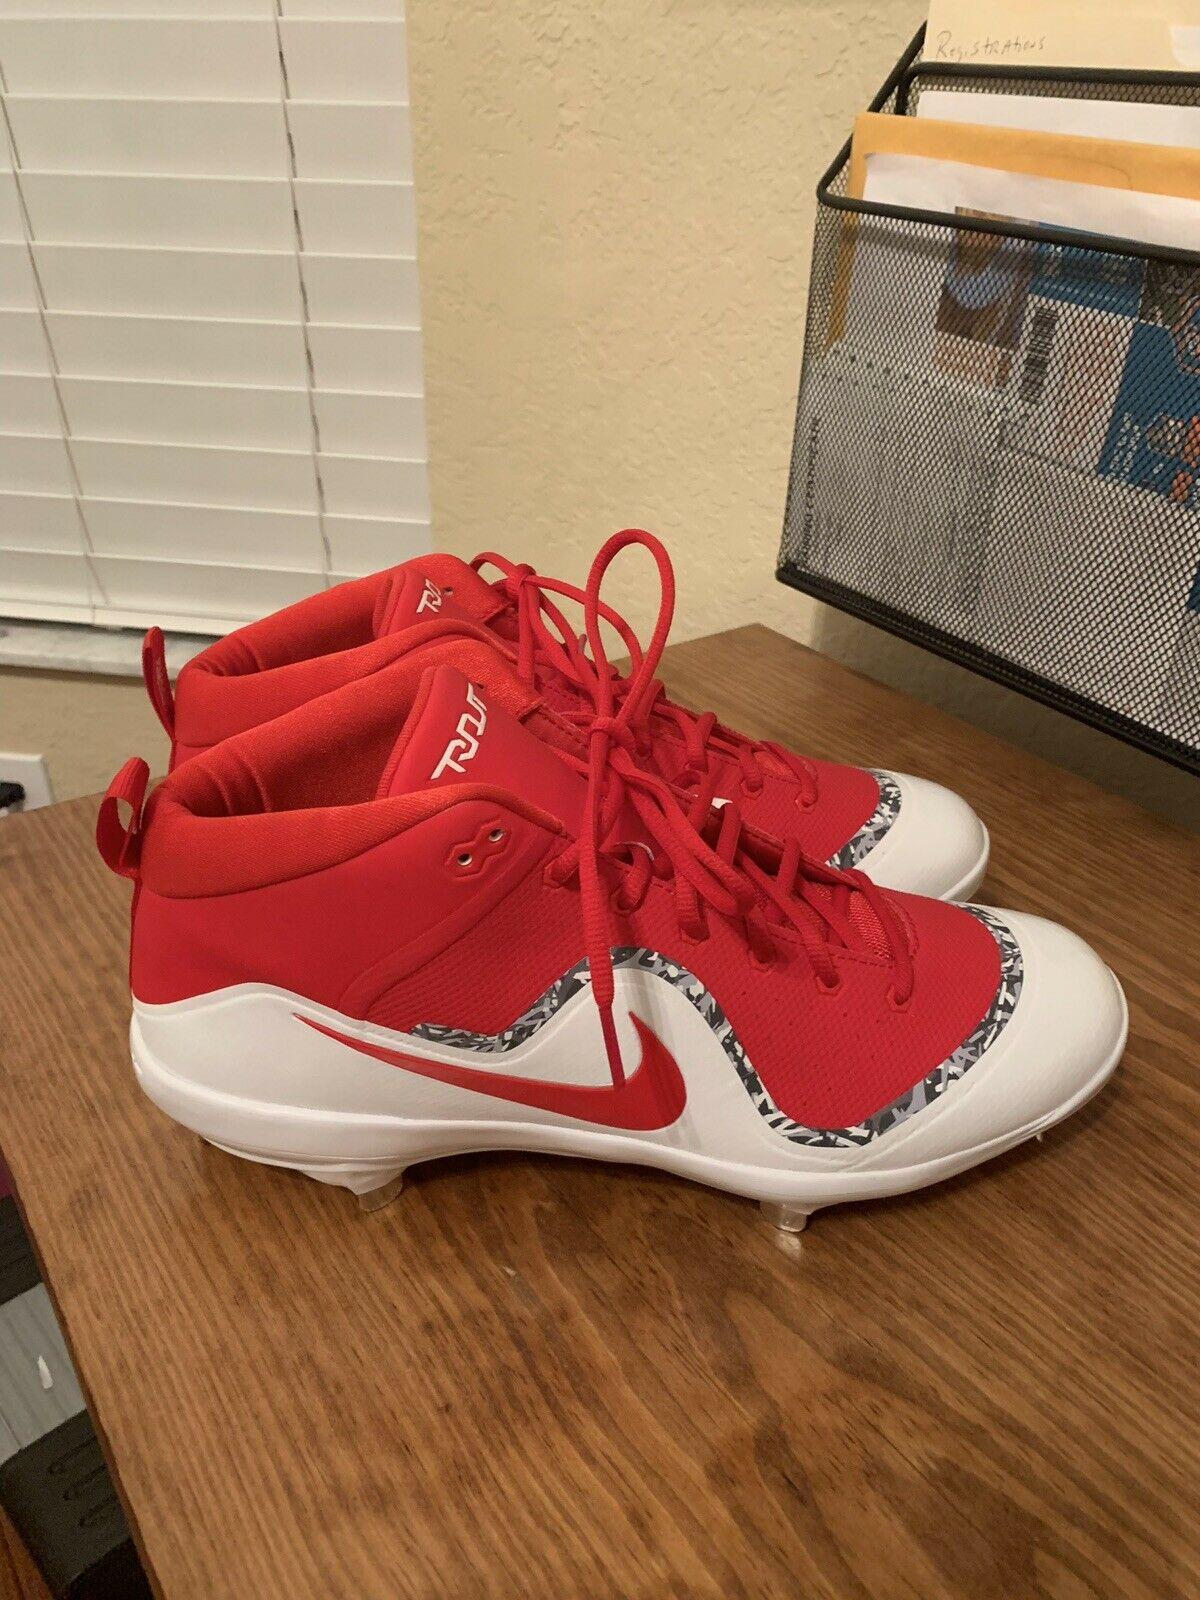 3df335a4c06 NEW NIKE Force Air Trout 4 Pro Metal Red White Baseball Size 12 - SH Cleats  FREE nvicqd2558-Men